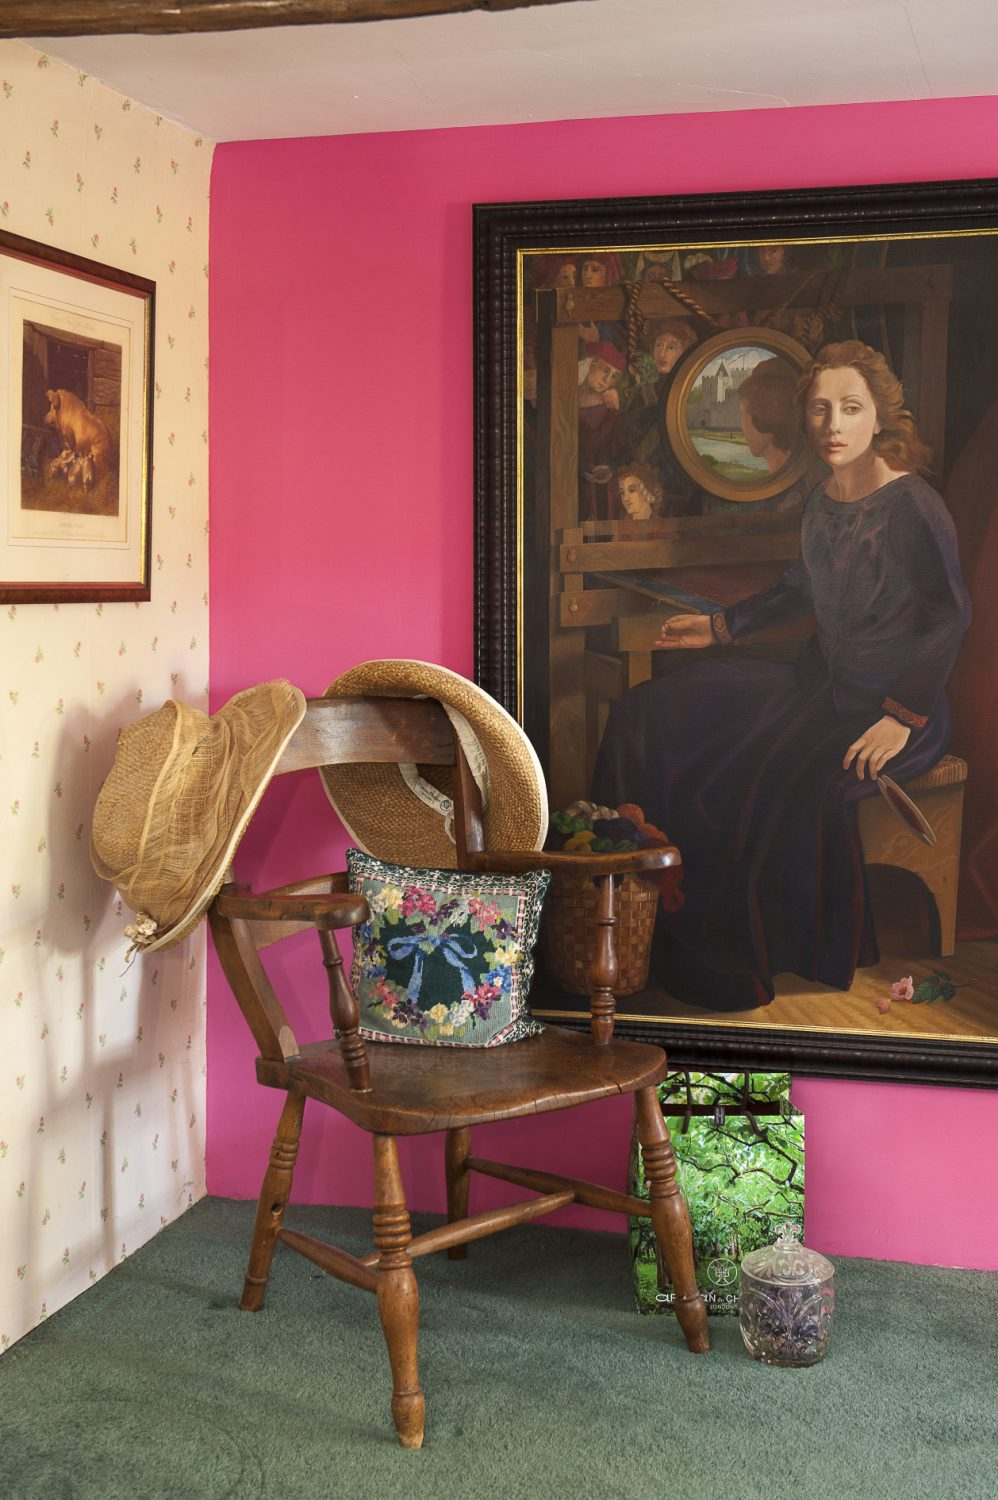 The large painting in the master bedroom is a depiction of Eve's favourite poem, 'The Lady of Shalott', by Alfred, Lord Tennyson